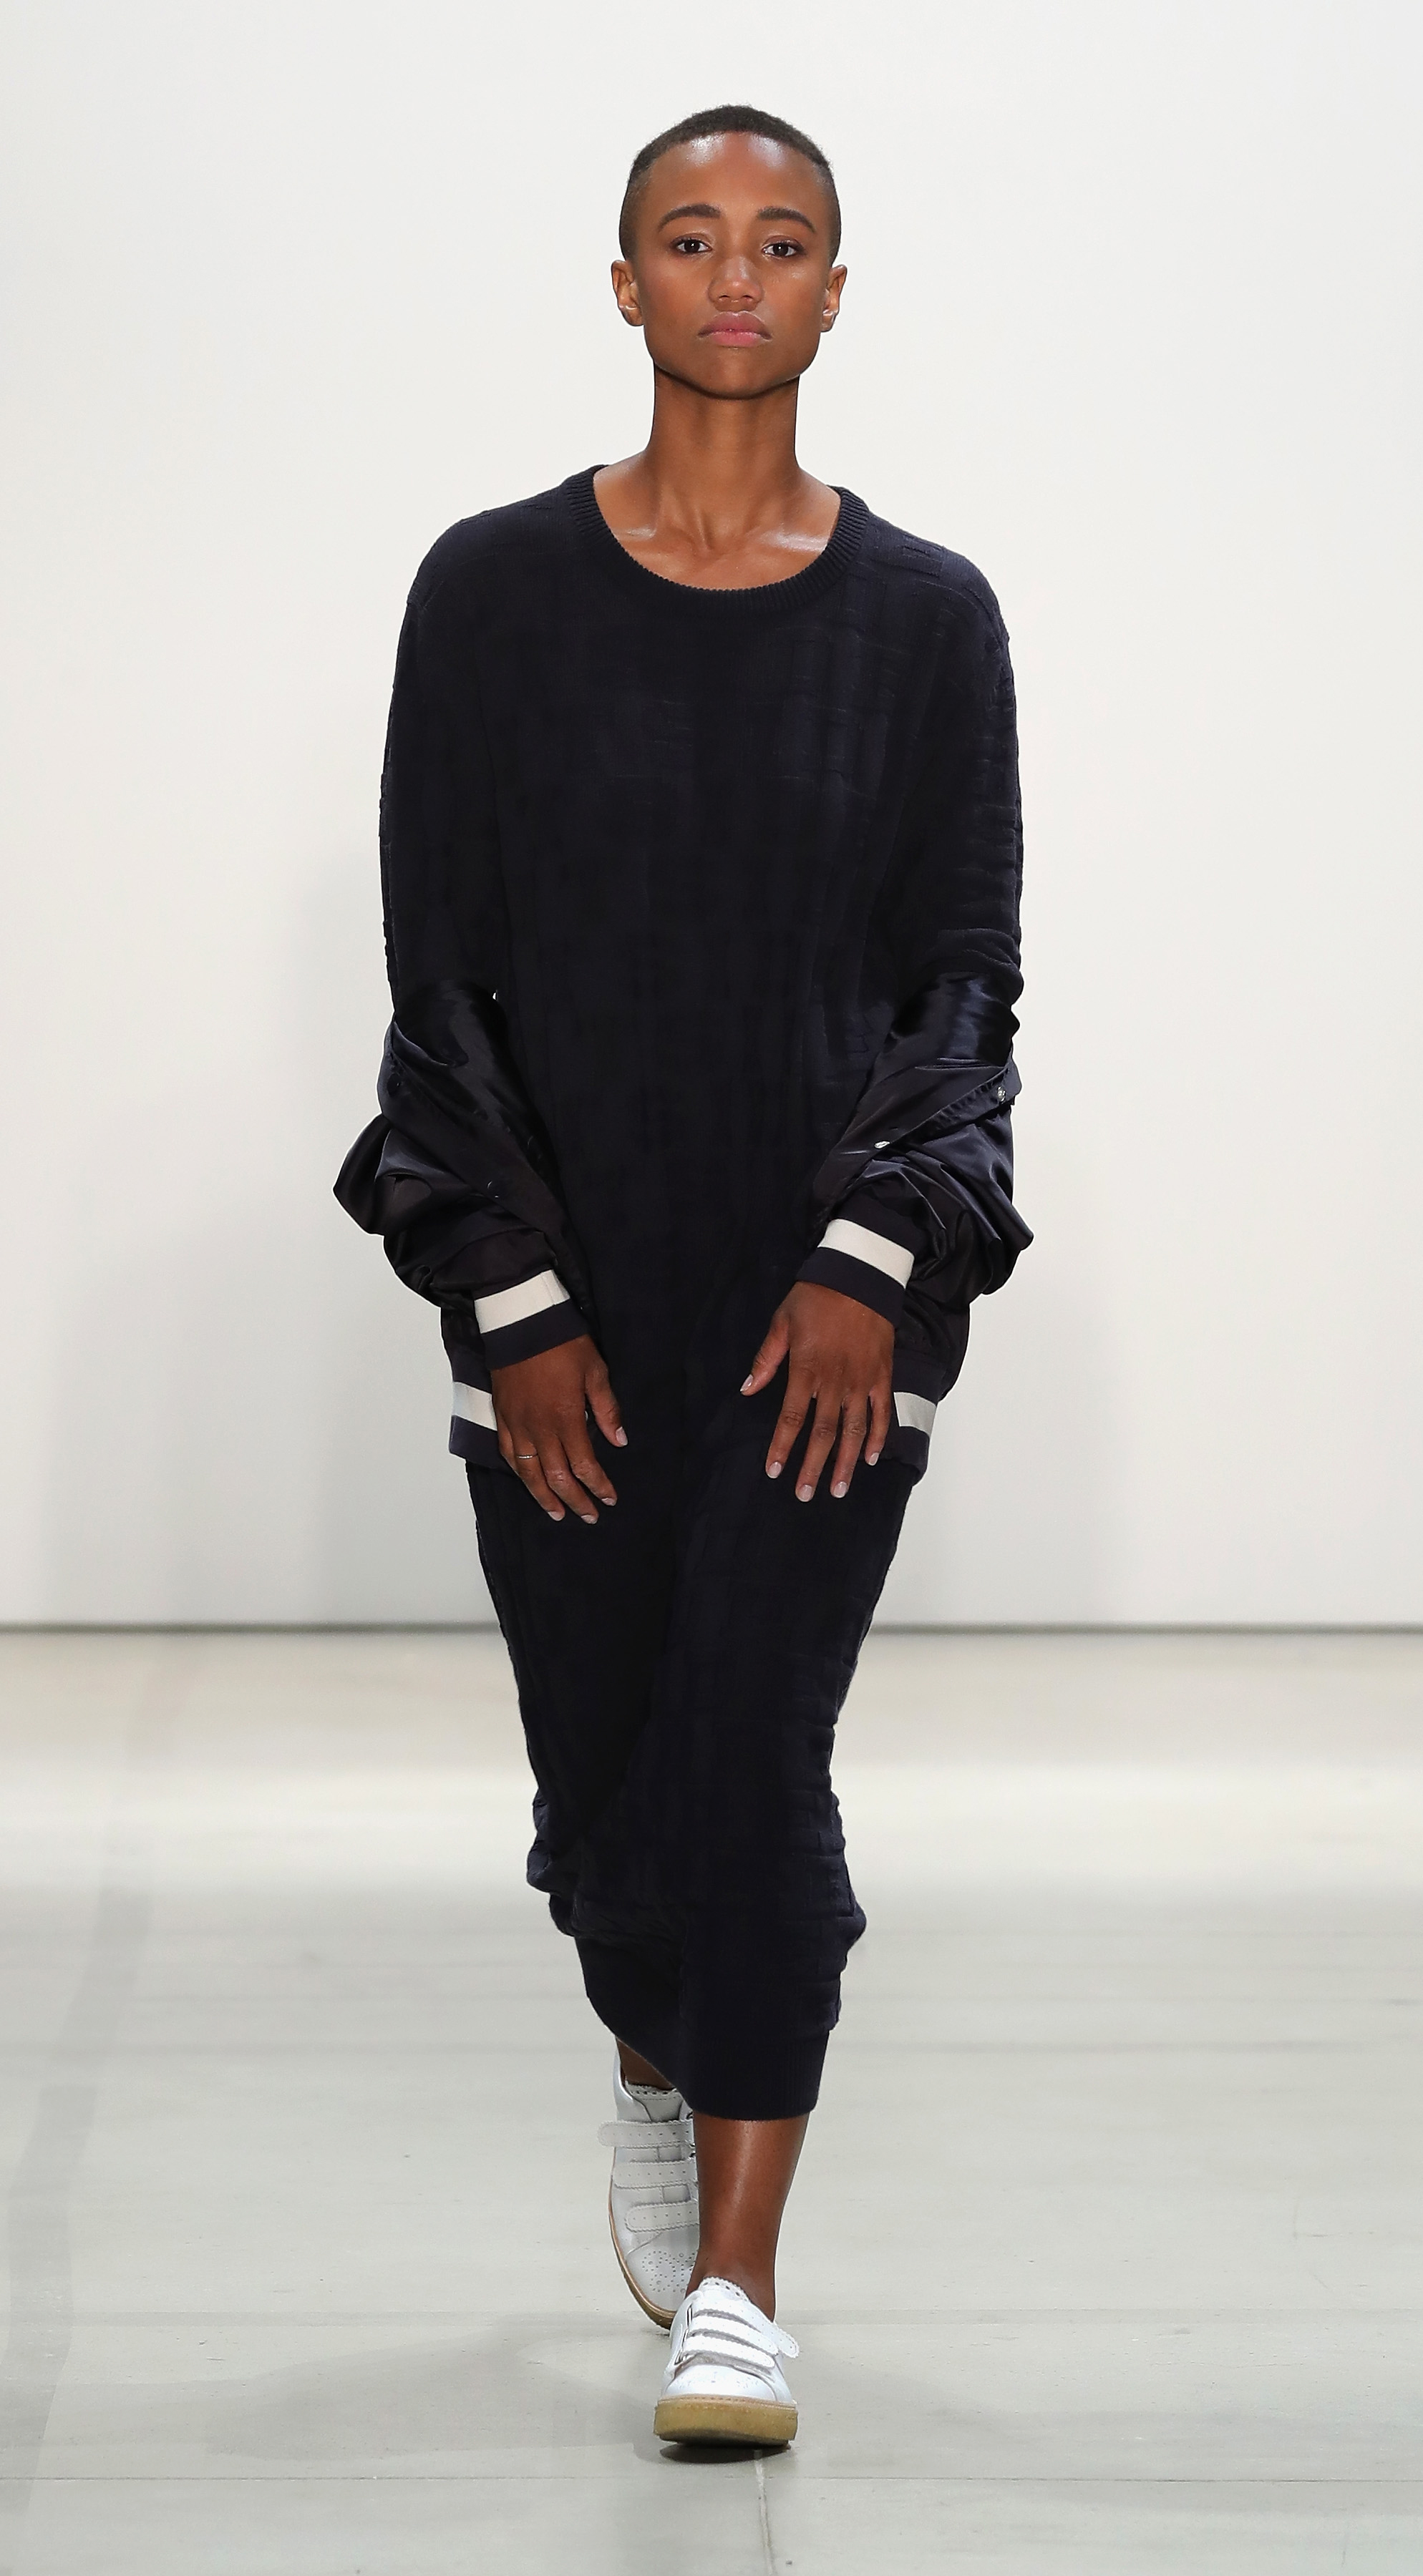 Stylebook at NYFW: Pittsburghers make their mark at New ...